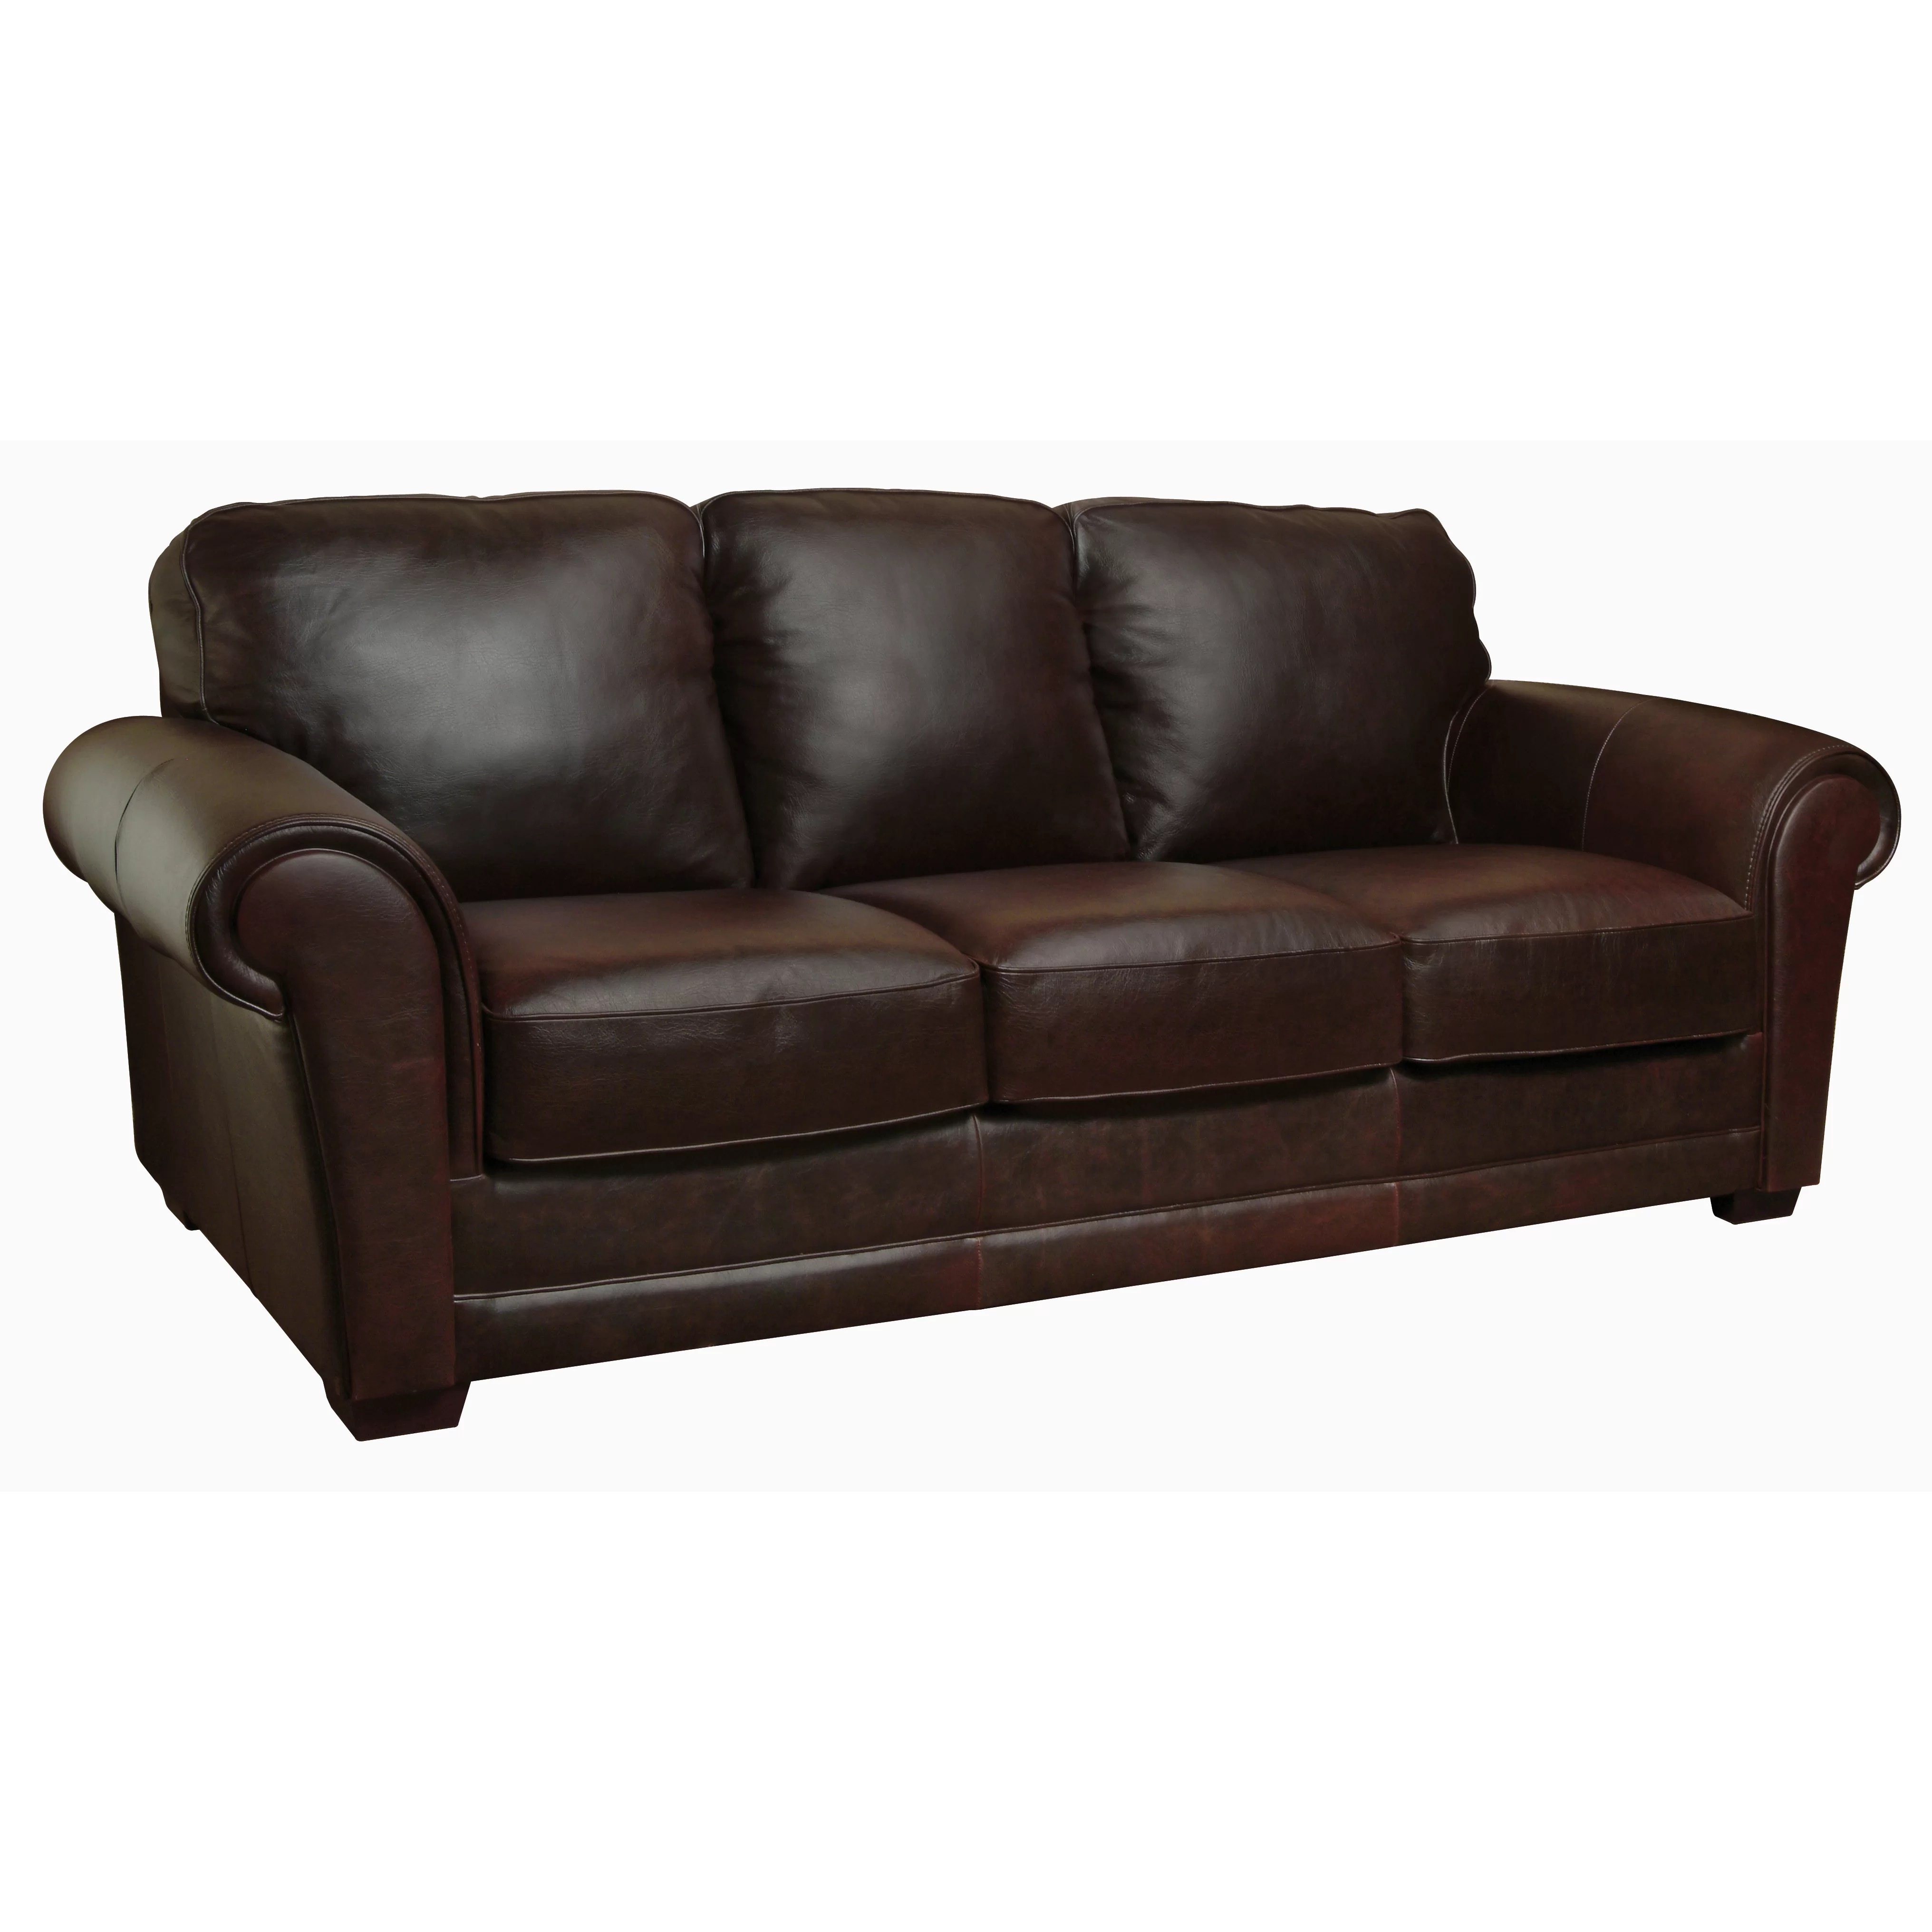 Luke Leather Mark Leather Living Room Collection & Reviews